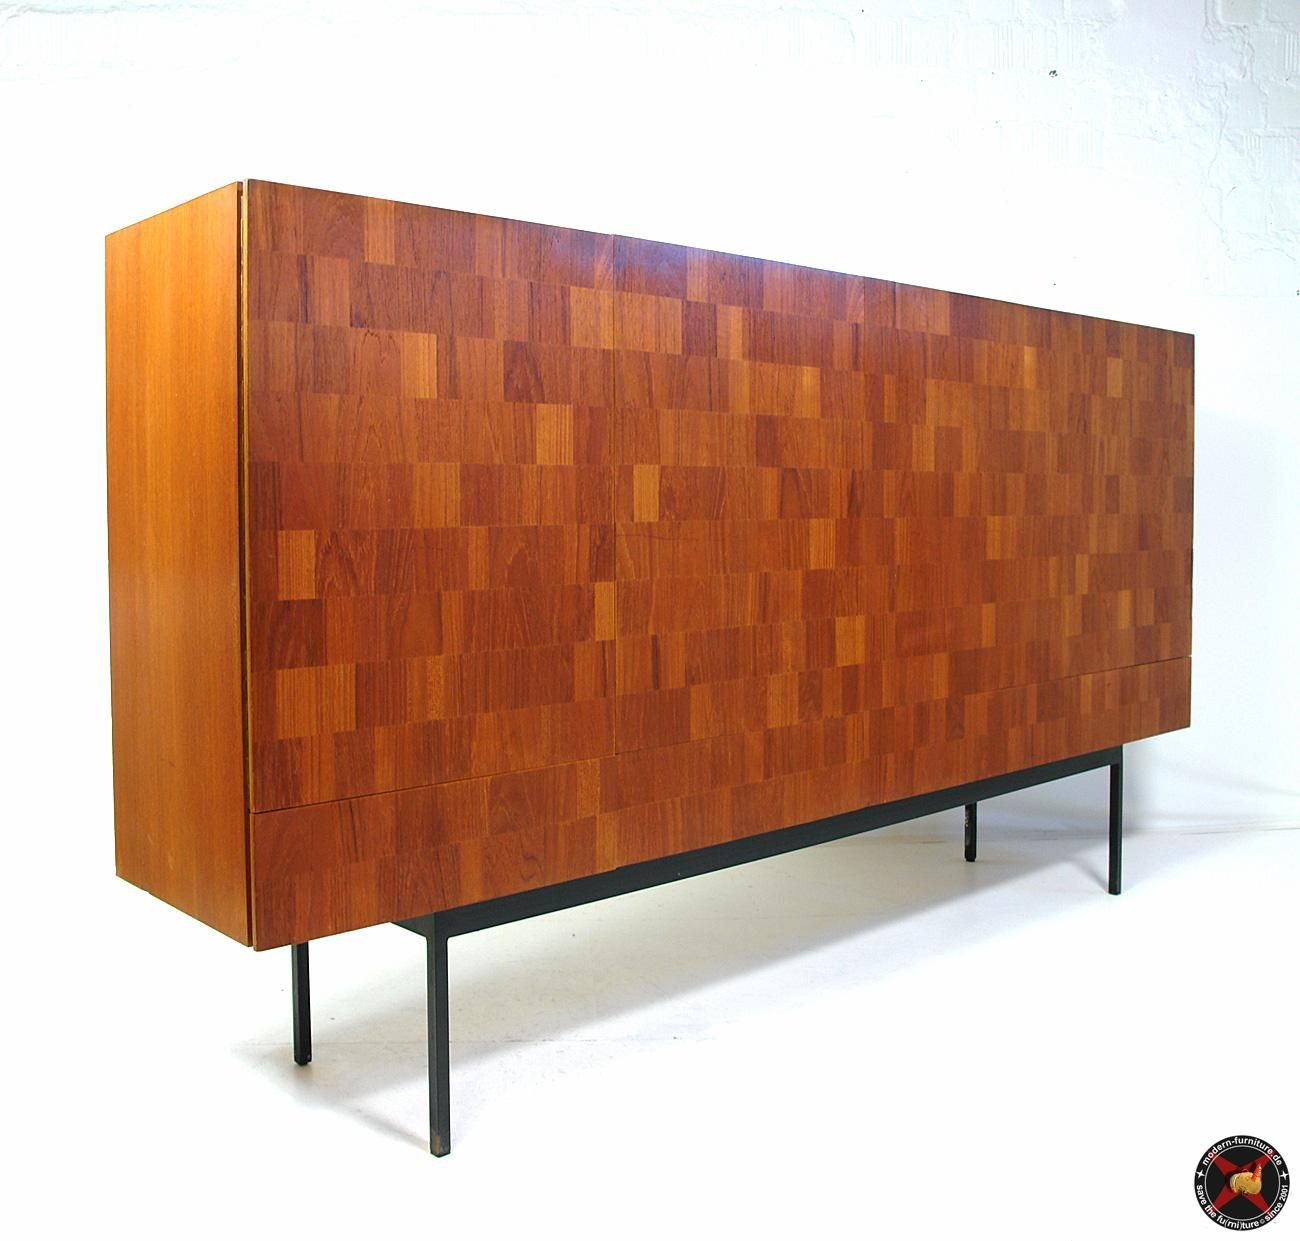 areaneo dieter waeckerlin for behr chess board rosewood highboard 1952 modern furniture. Black Bedroom Furniture Sets. Home Design Ideas